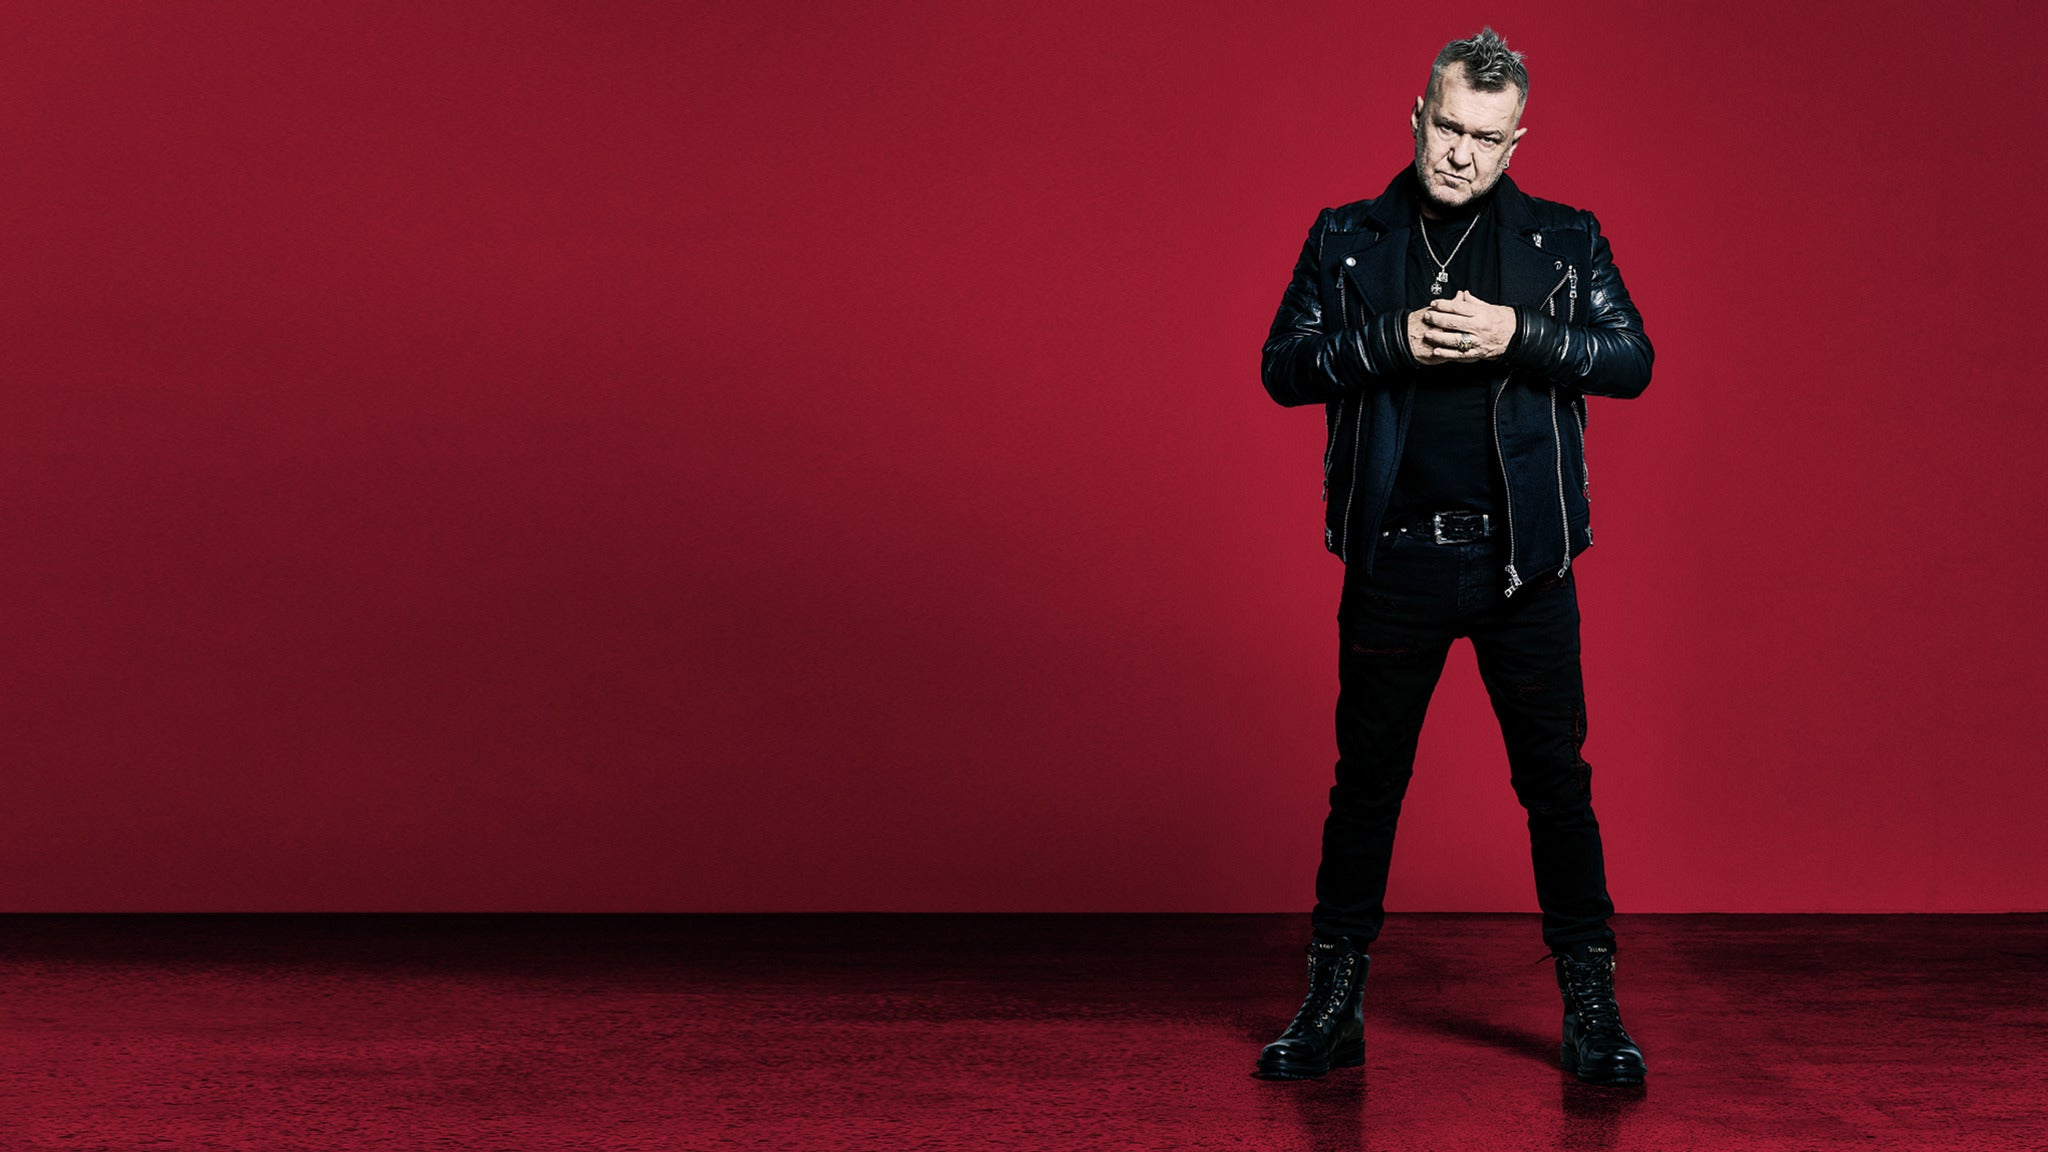 BY THE C - Jimmy Barnes